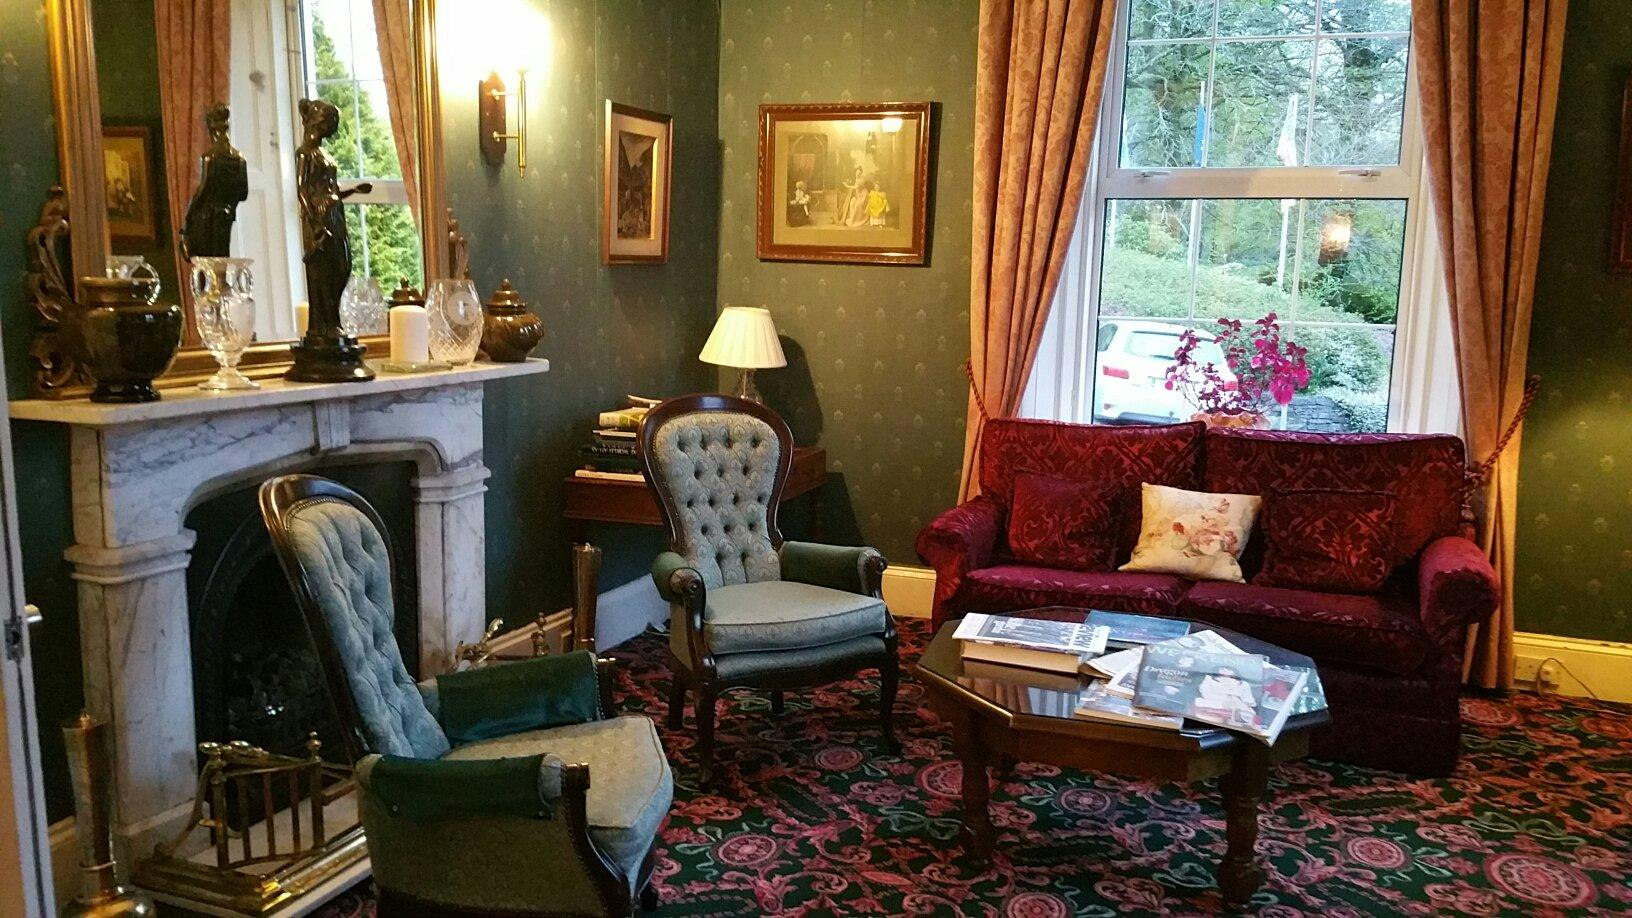 Ross Lake House Hotel Oughterard, Co. Galway